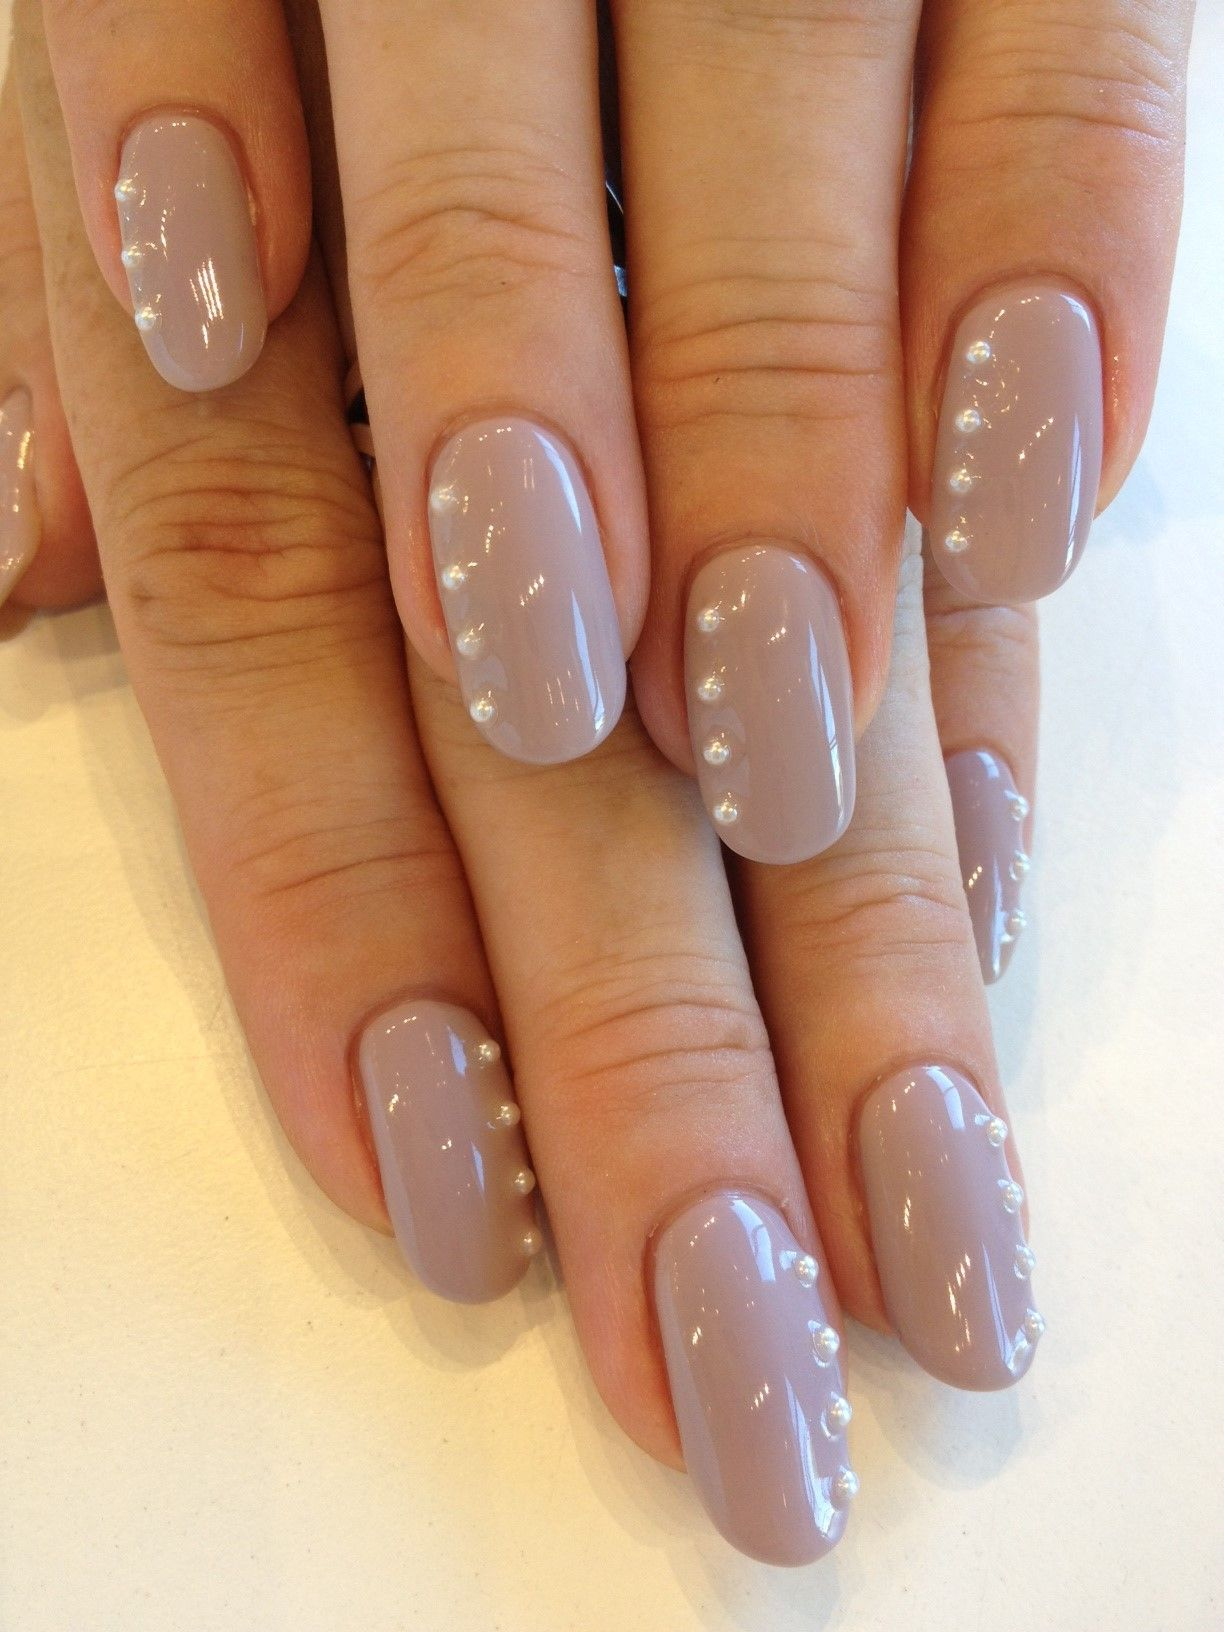 Biogel: strong and beautiful nails